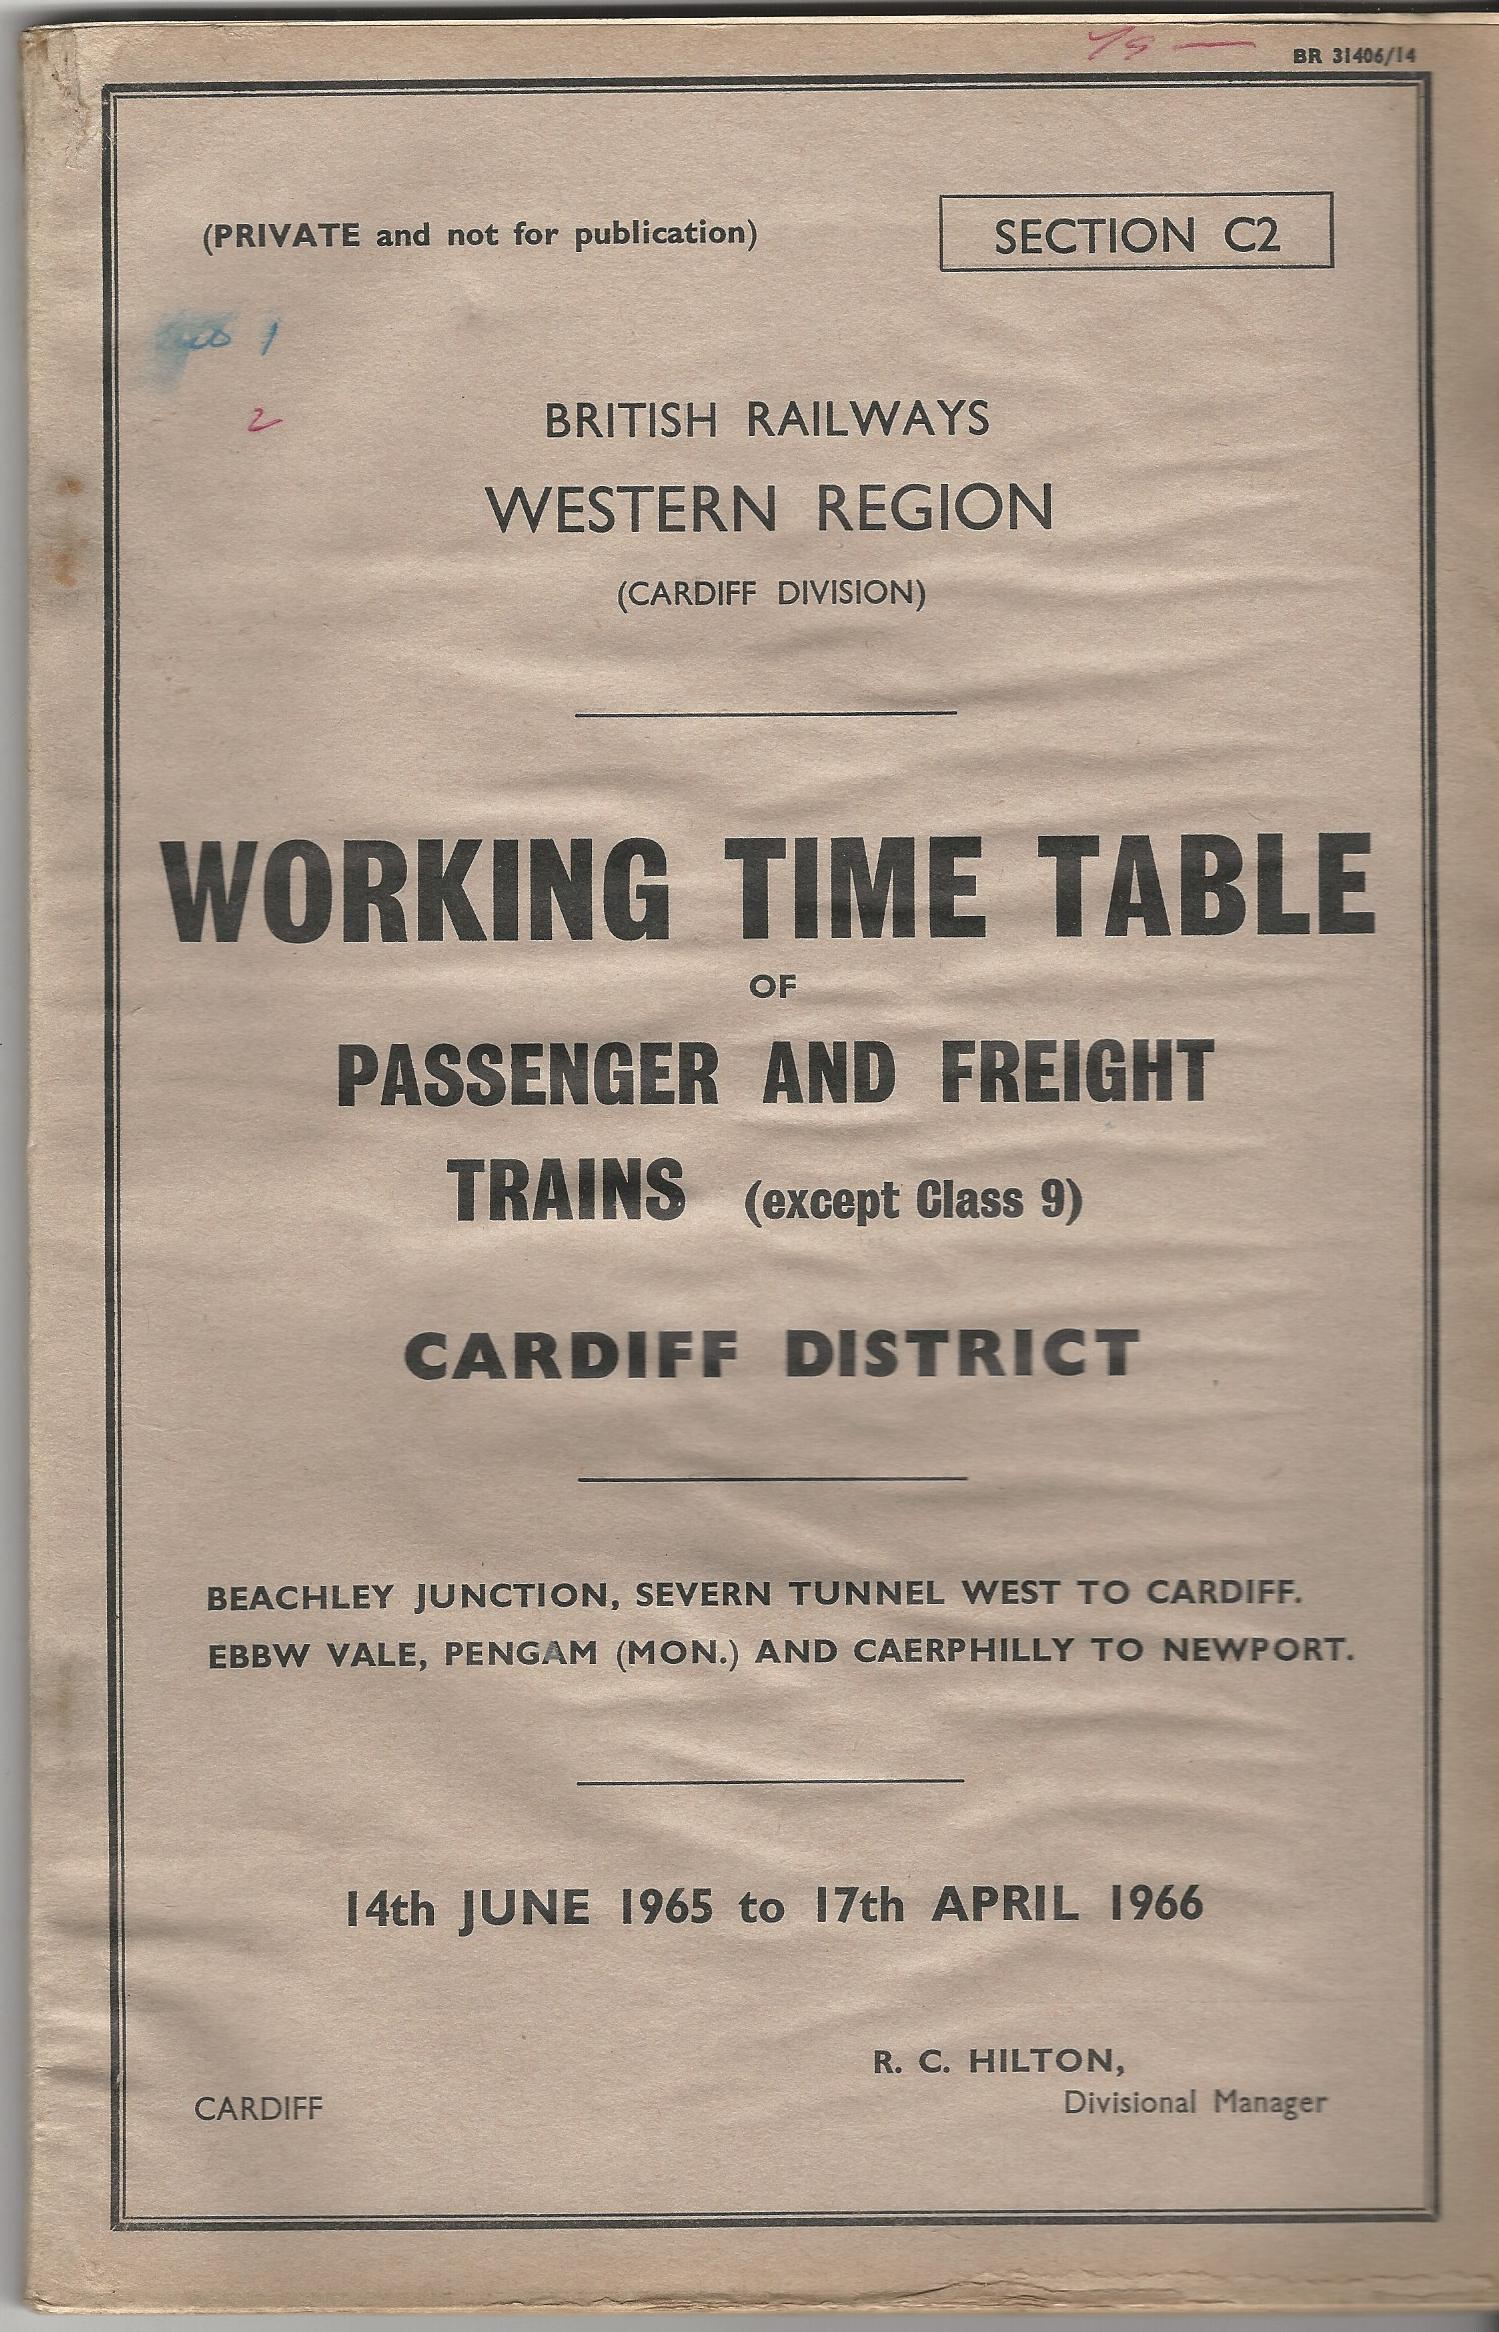 Image for British Railways Western Region: Working Timetable of Passenger and Freight Trains (Except Class 9): Cardiff District 14th June 1965 to 17th April 1966